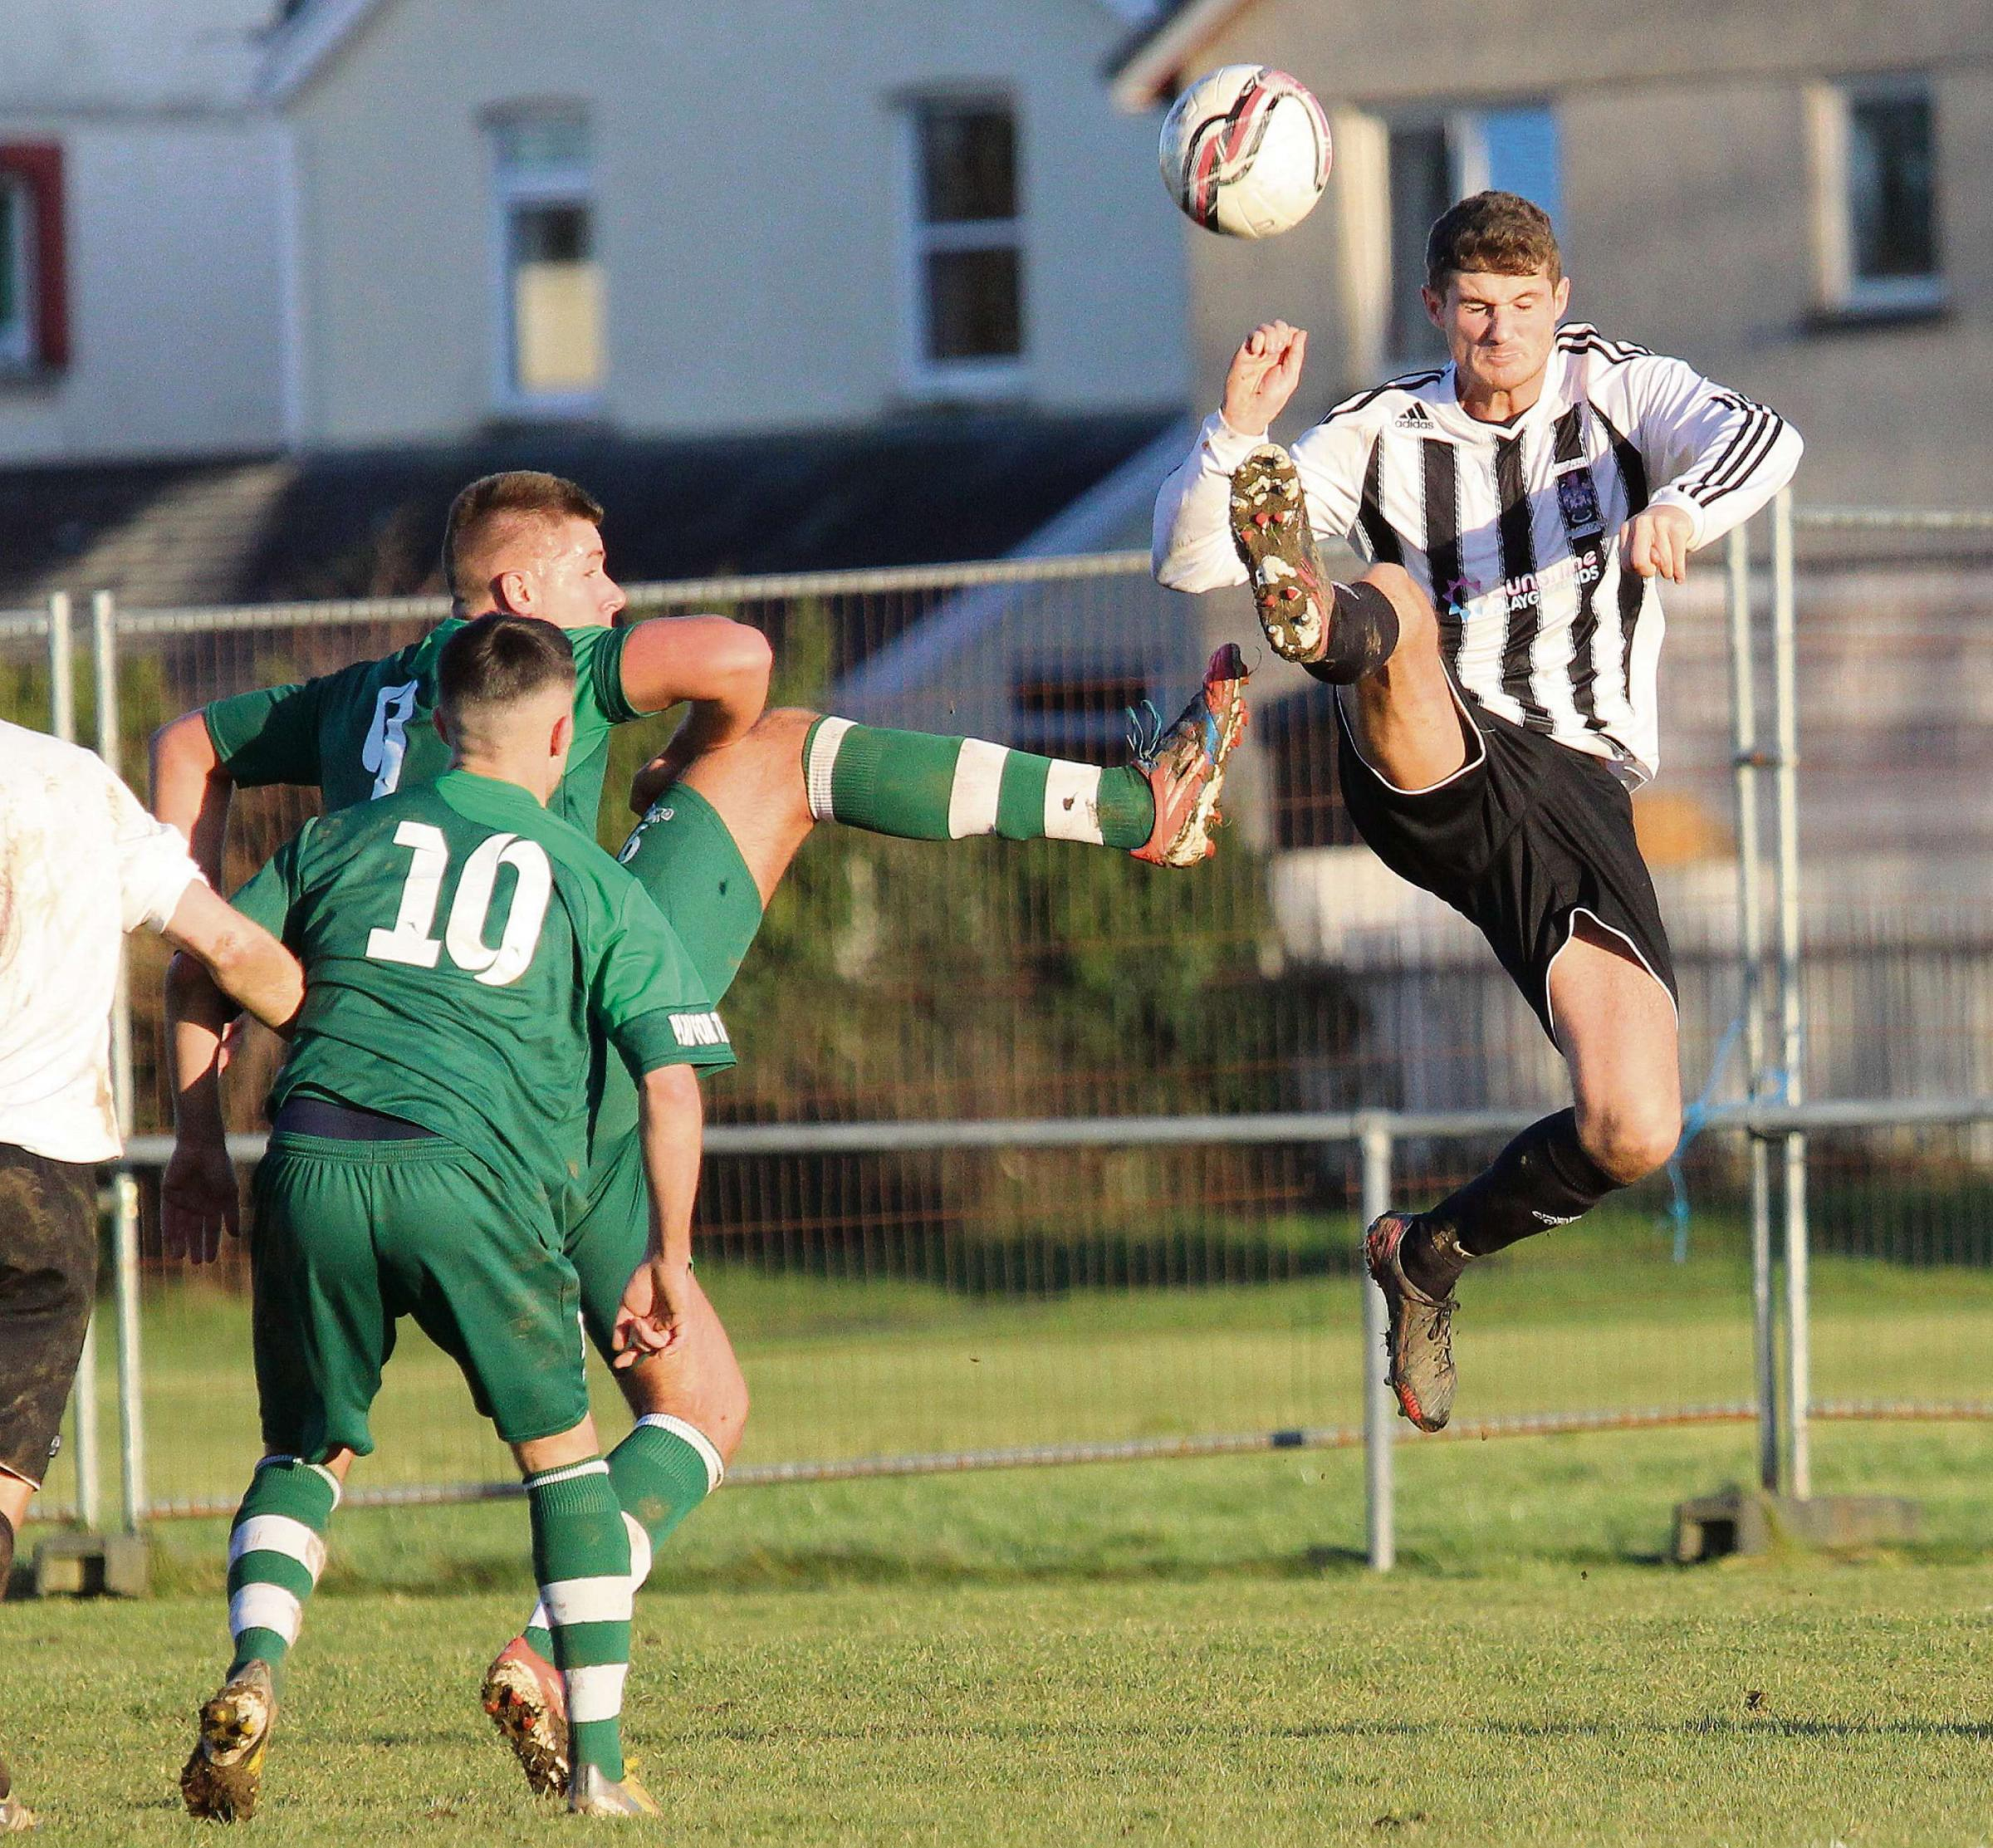 Hyde seeks league safety for Ammanford